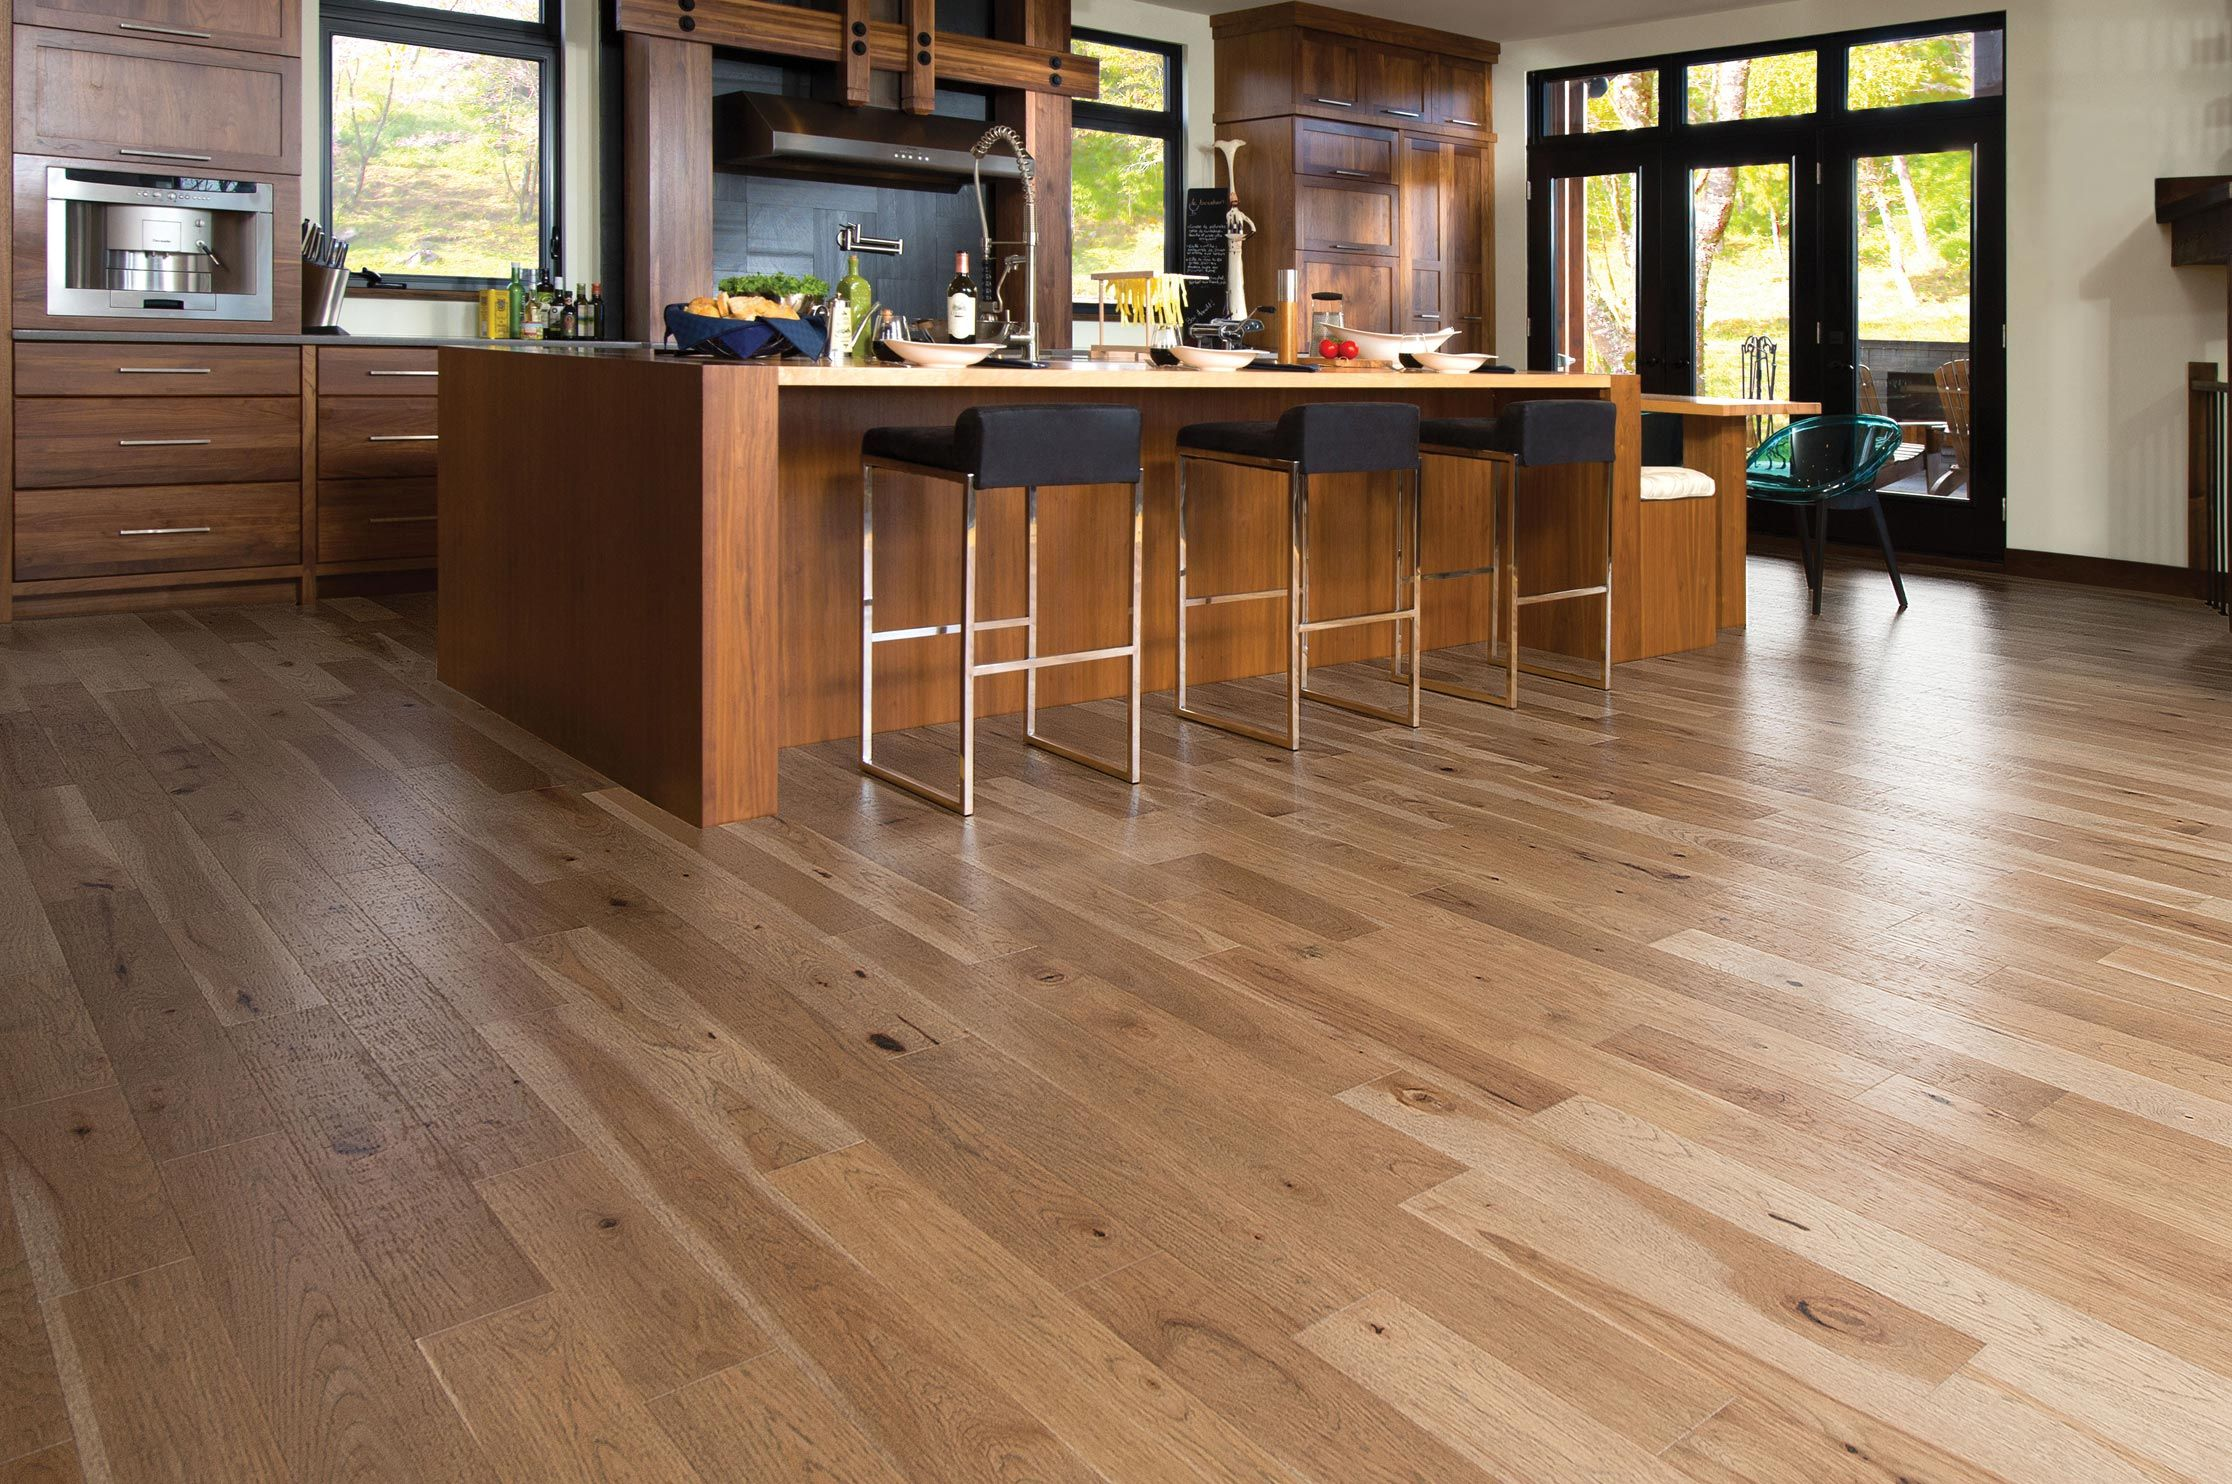 Mirage Hardwood flooring photo album - Mirage Floors Old Hickory Seashell.  A greyish, amber brown for a warm, friendly ambiance.